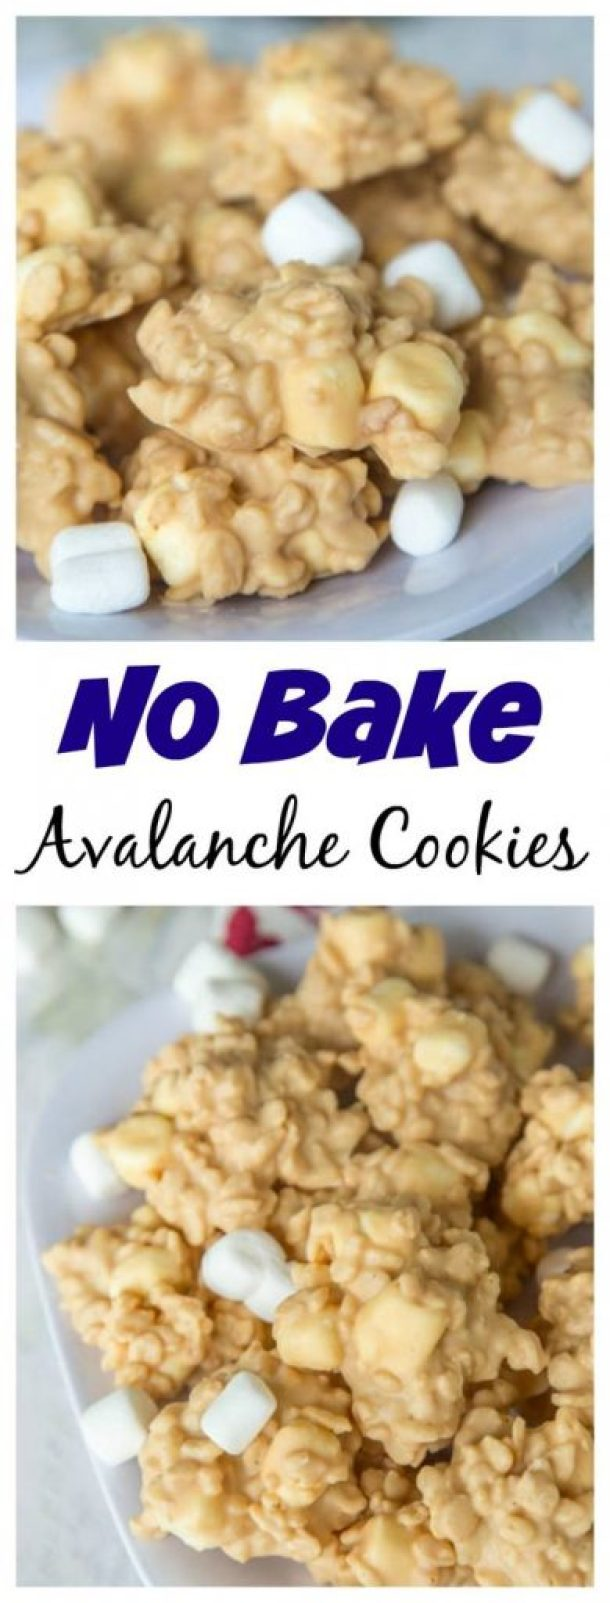 No Bake Cookies Recipes - Easy No Bake Avalanche Cookies - White Chocolate Peanut Butter and Marshmallow Yumminess via Dinners Dishes and Desserts